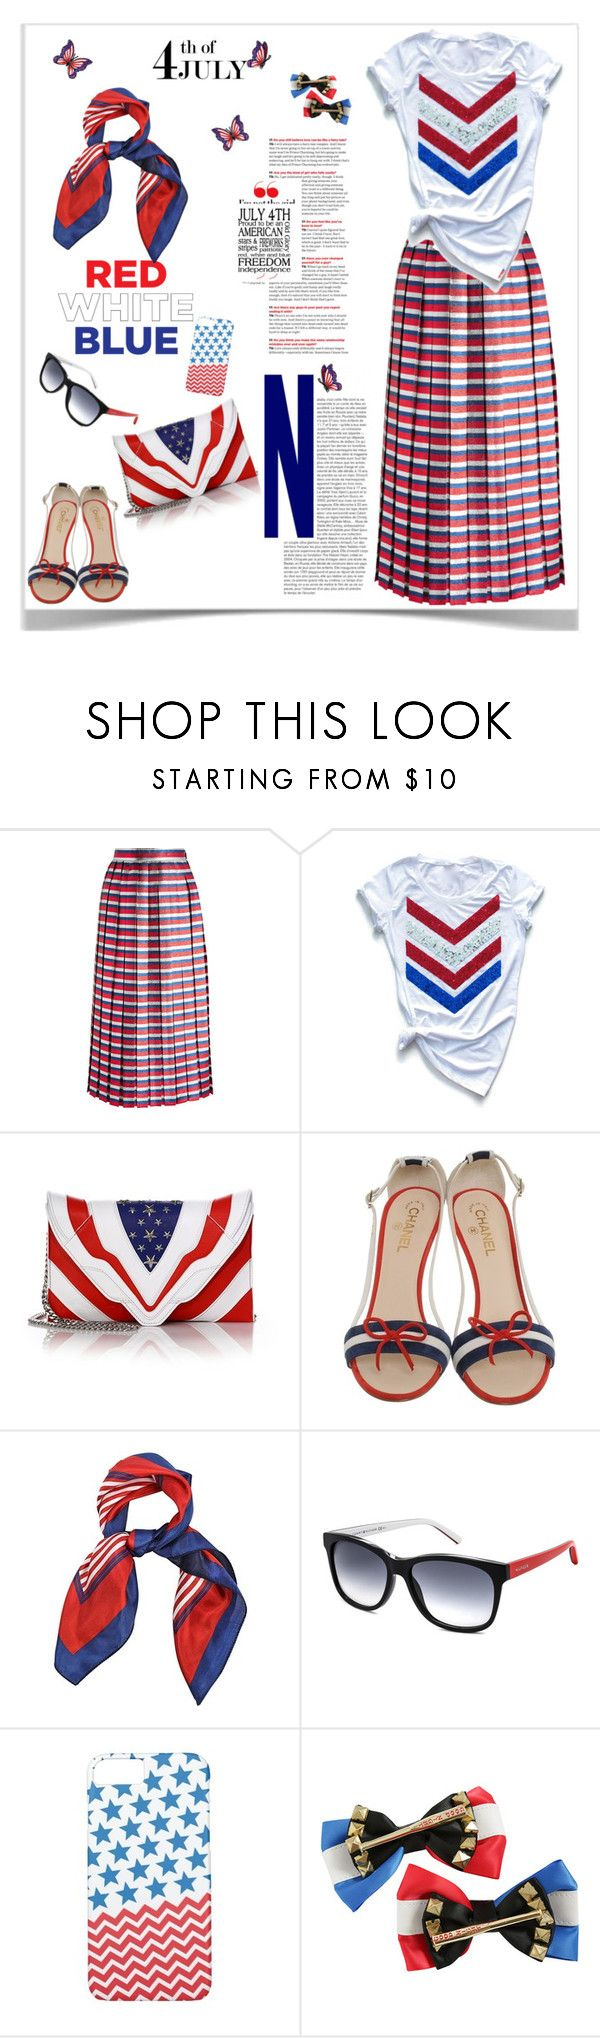 """""""Red, White & Blue: Celebrate the 4th of July"""" by ellie366 ❤ liked on Polyvore featuring Gucci, Elena Ghisellini, Chanel, Tommy Hilfiger, Case-Mate, DC Comics, stripes, fourthofjuly, citychic and redwhiteblue"""